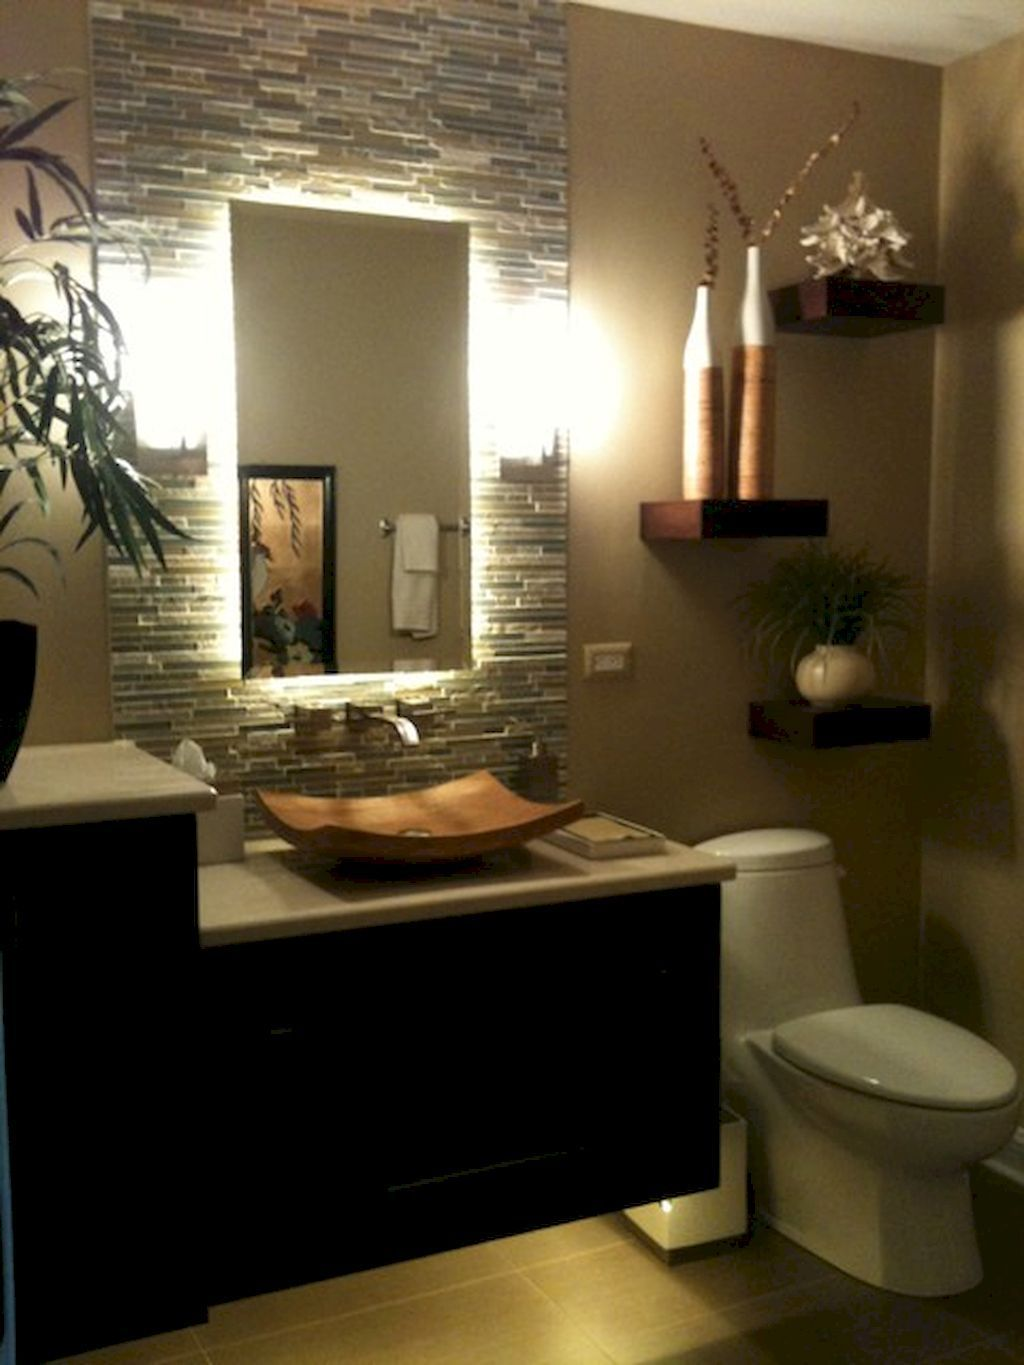 Tiny Powder Room Designs: 35 Most Efficient Small Powder Room Design Ideas (24